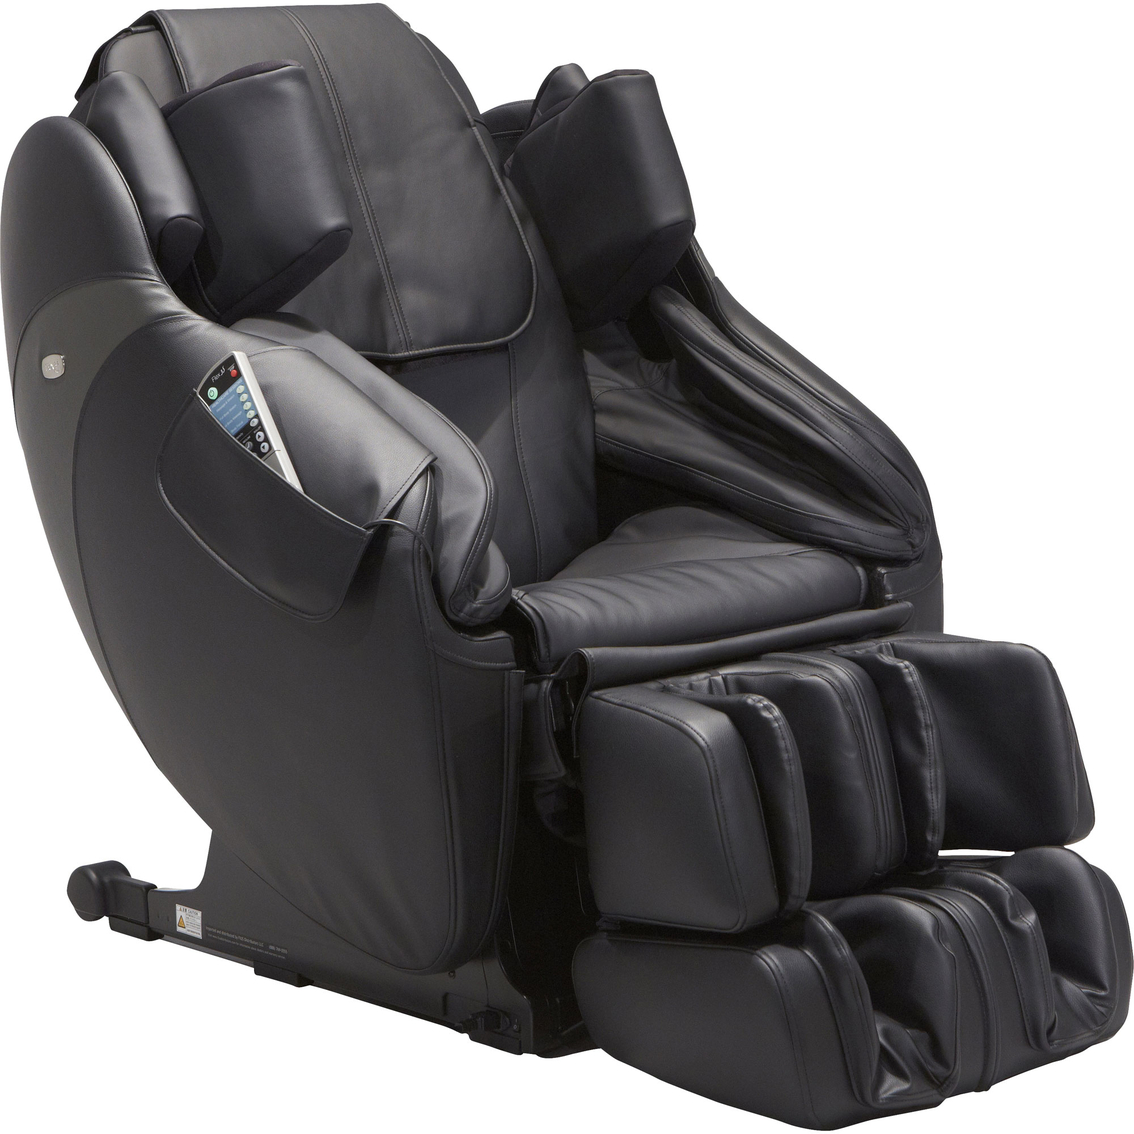 Inada Chair Inada Flex 3s Massage Chair Black Chairs And Recliners